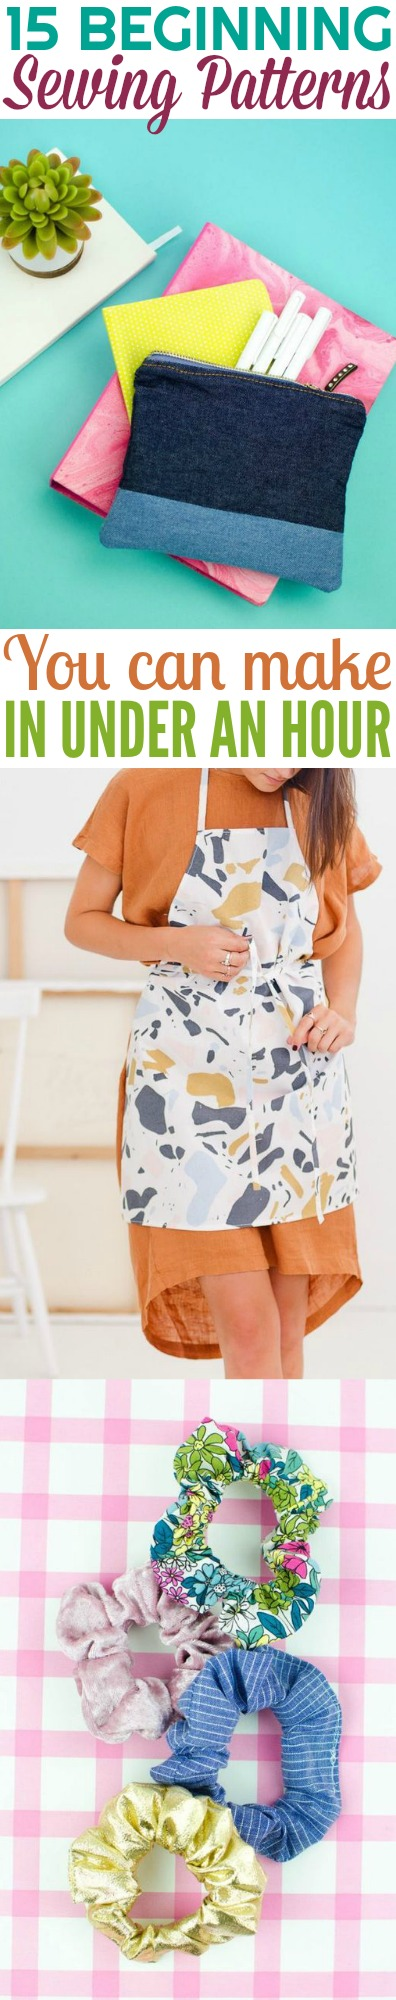 Beginning Sewing Patterns You Can Make in Under an Hour